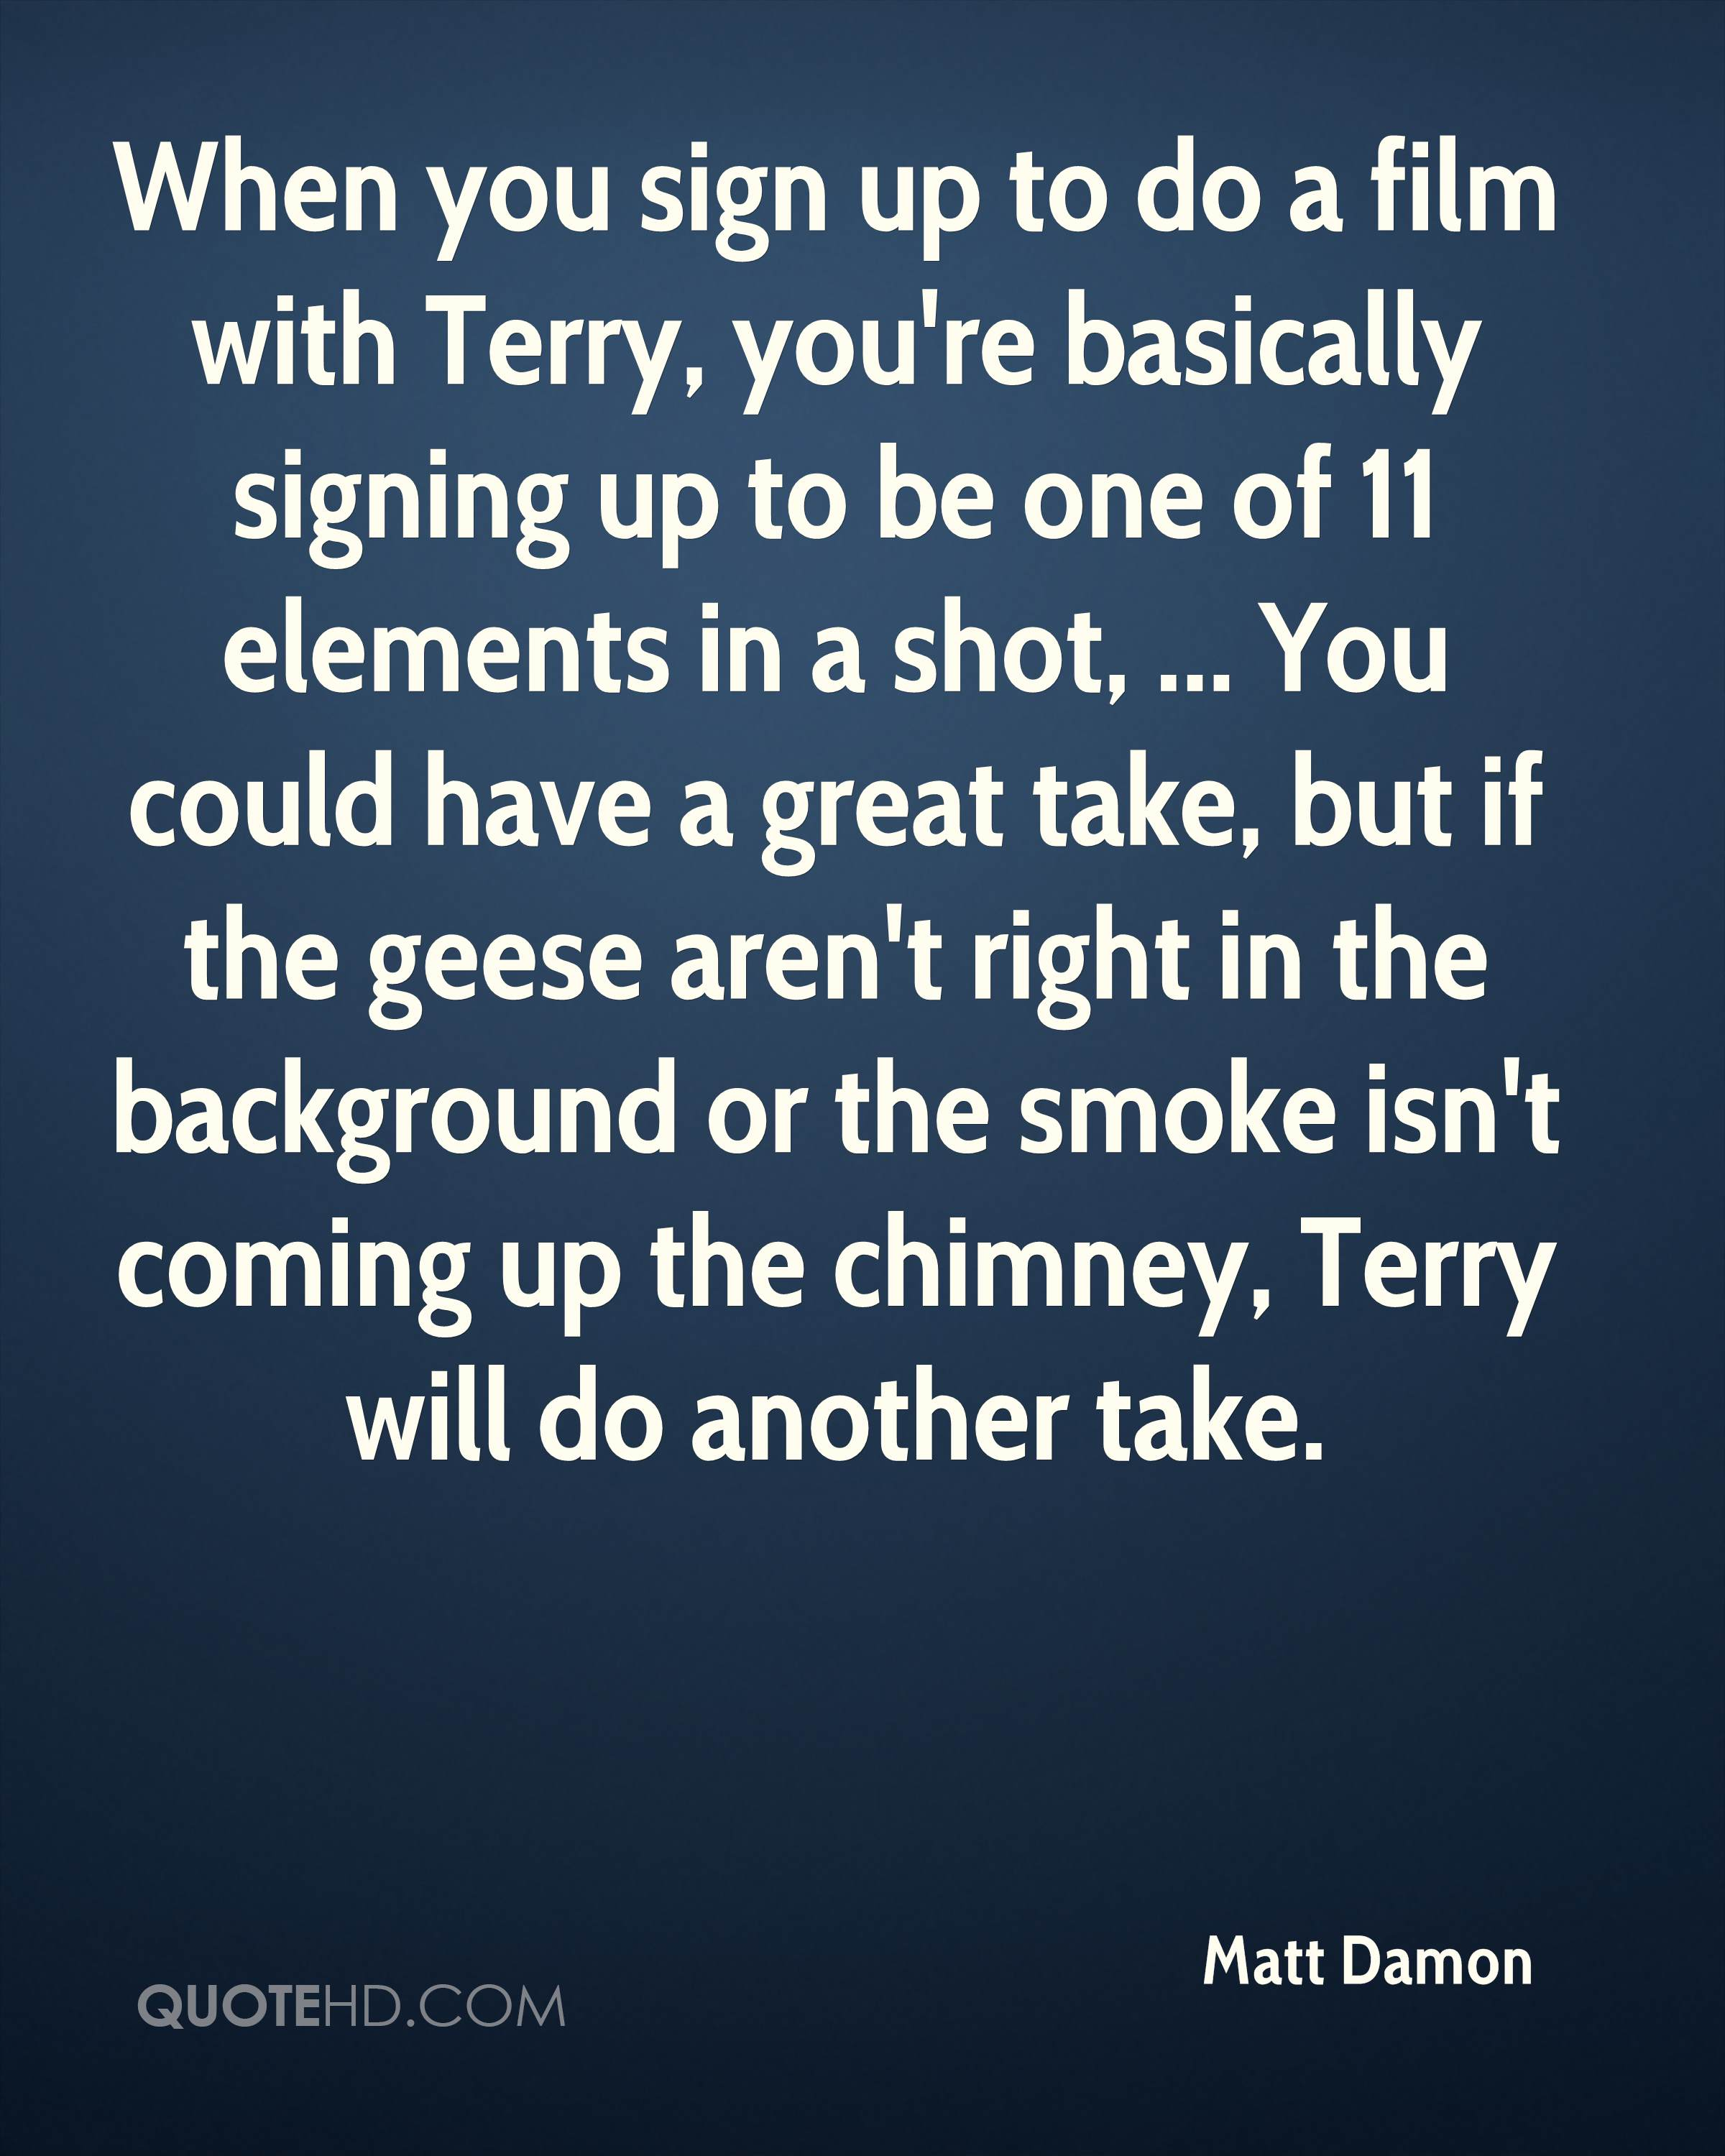 When you sign up to do a film with Terry, you're basically signing up to be one of 11 elements in a shot, ... You could have a great take, but if the geese aren't right in the background or the smoke isn't coming up the chimney, Terry will do another take.